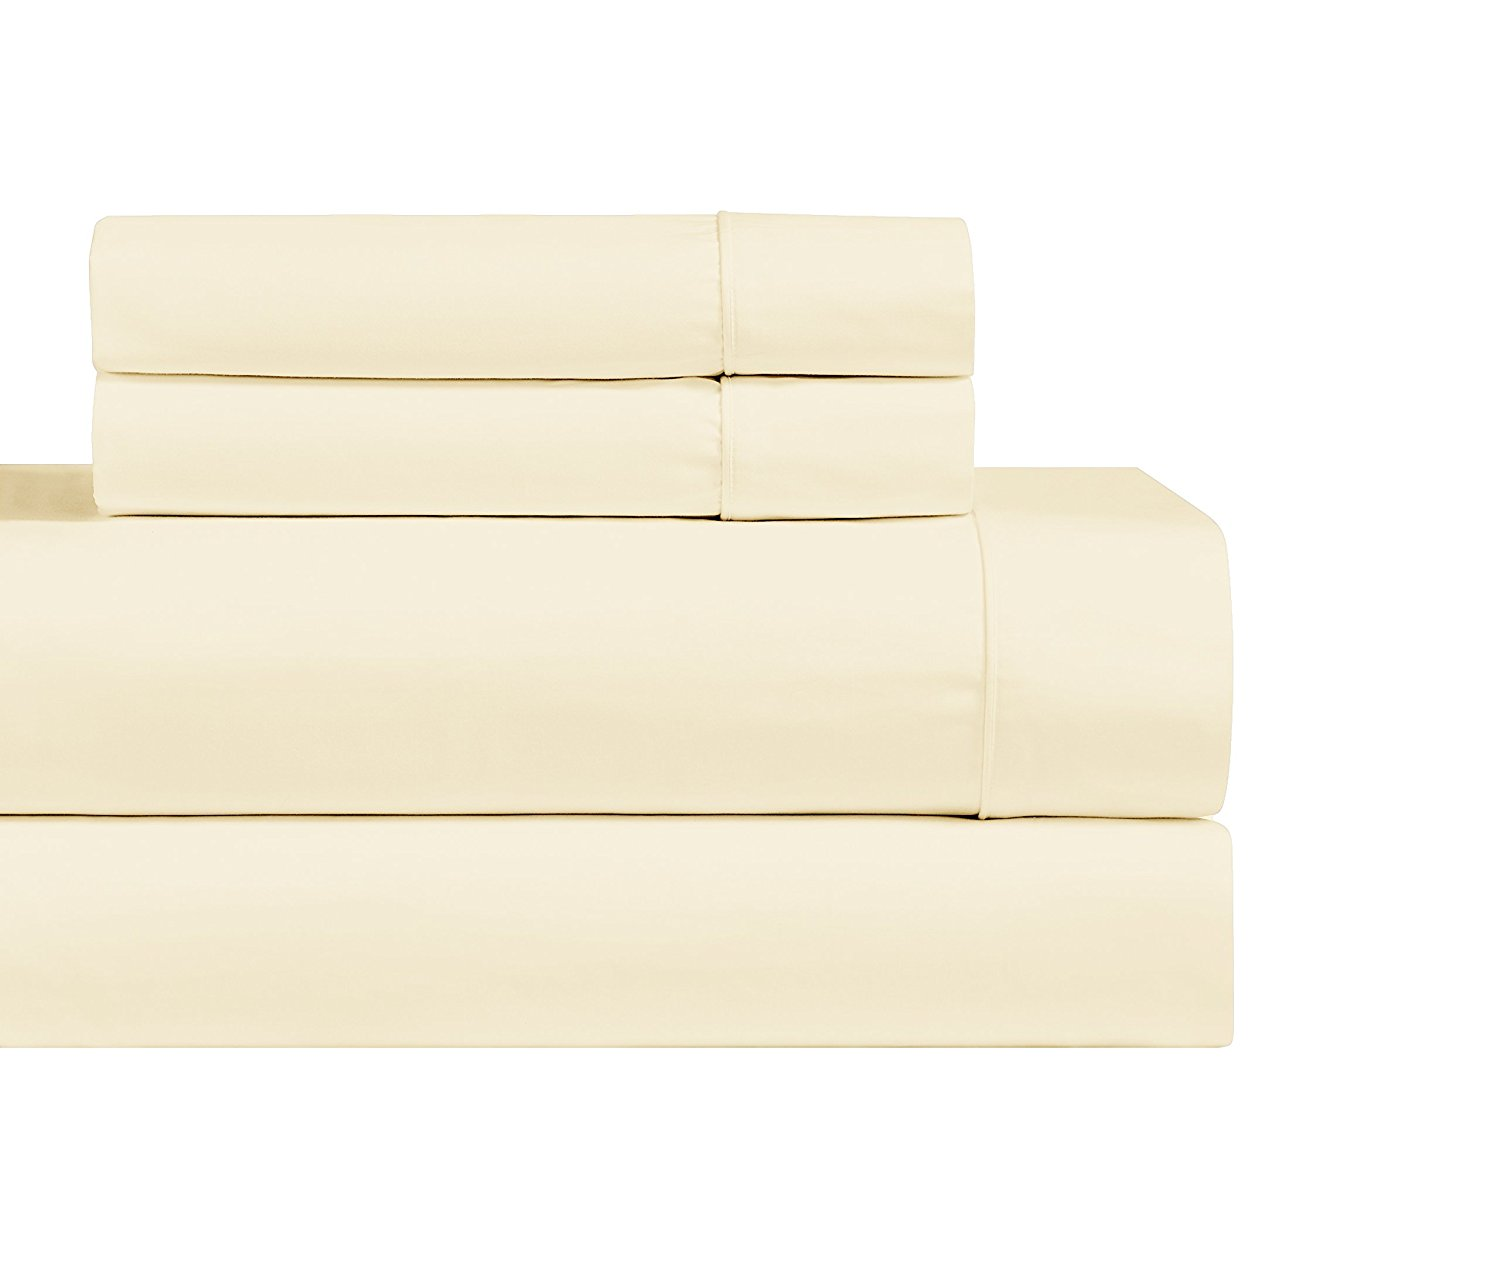 Image of Sheetsnthings's 1000 thread count cotton sheets - Best 1000 Thread Count Sheets